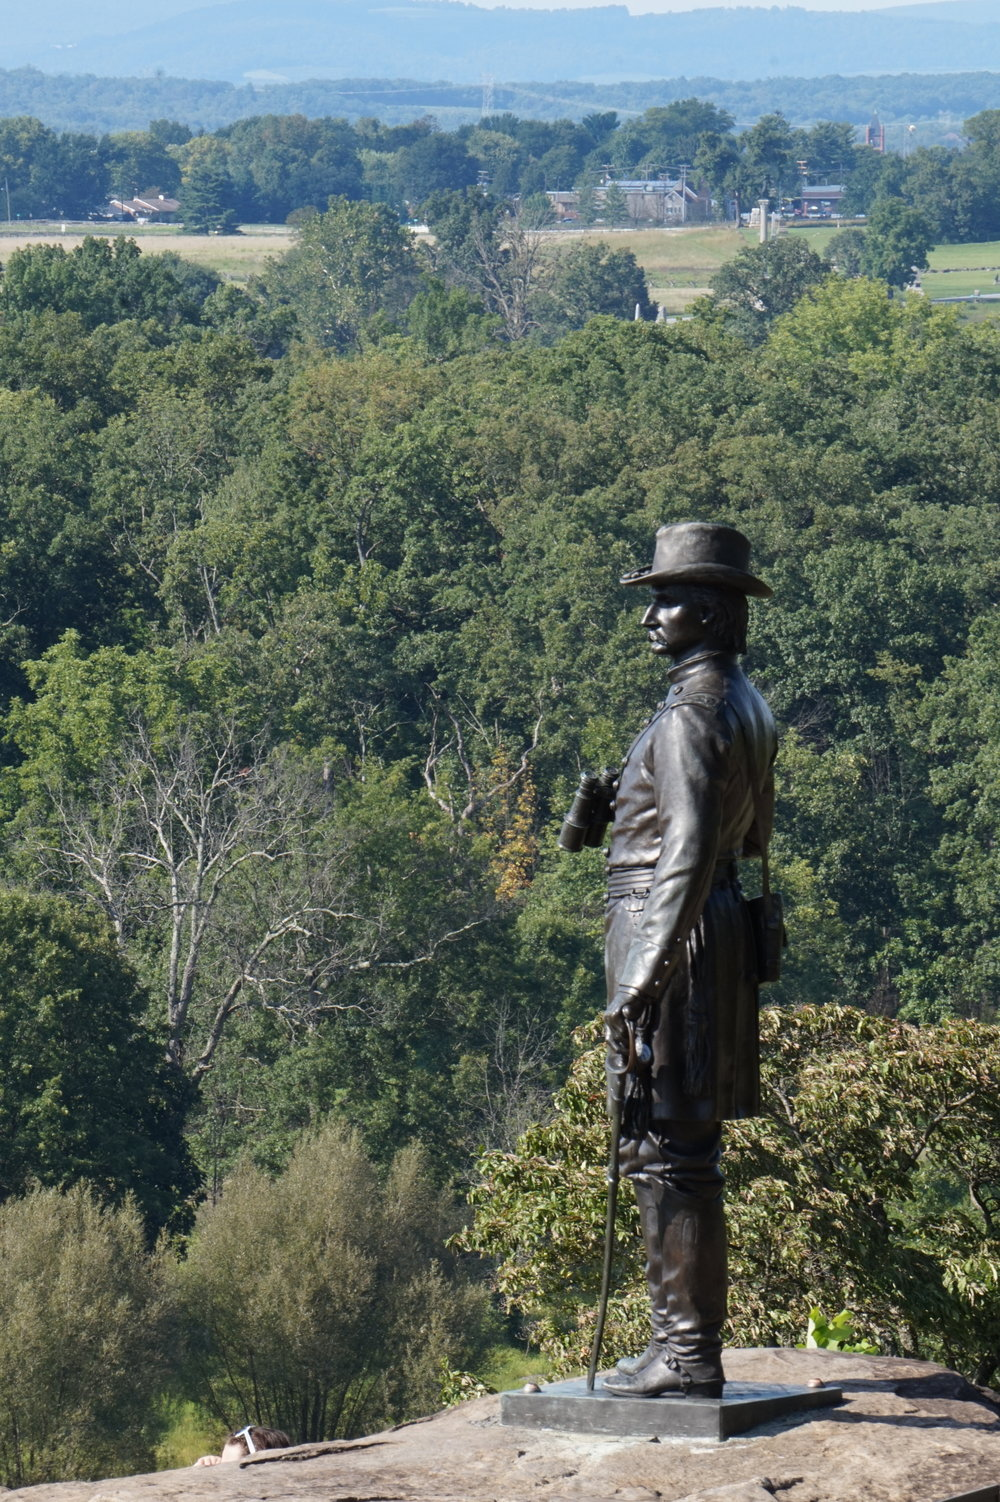 Monument to Governeur Kemble Warren, a military engineer famous for arranging for the last-minute defense of Little Round Top on July 2, 1863.